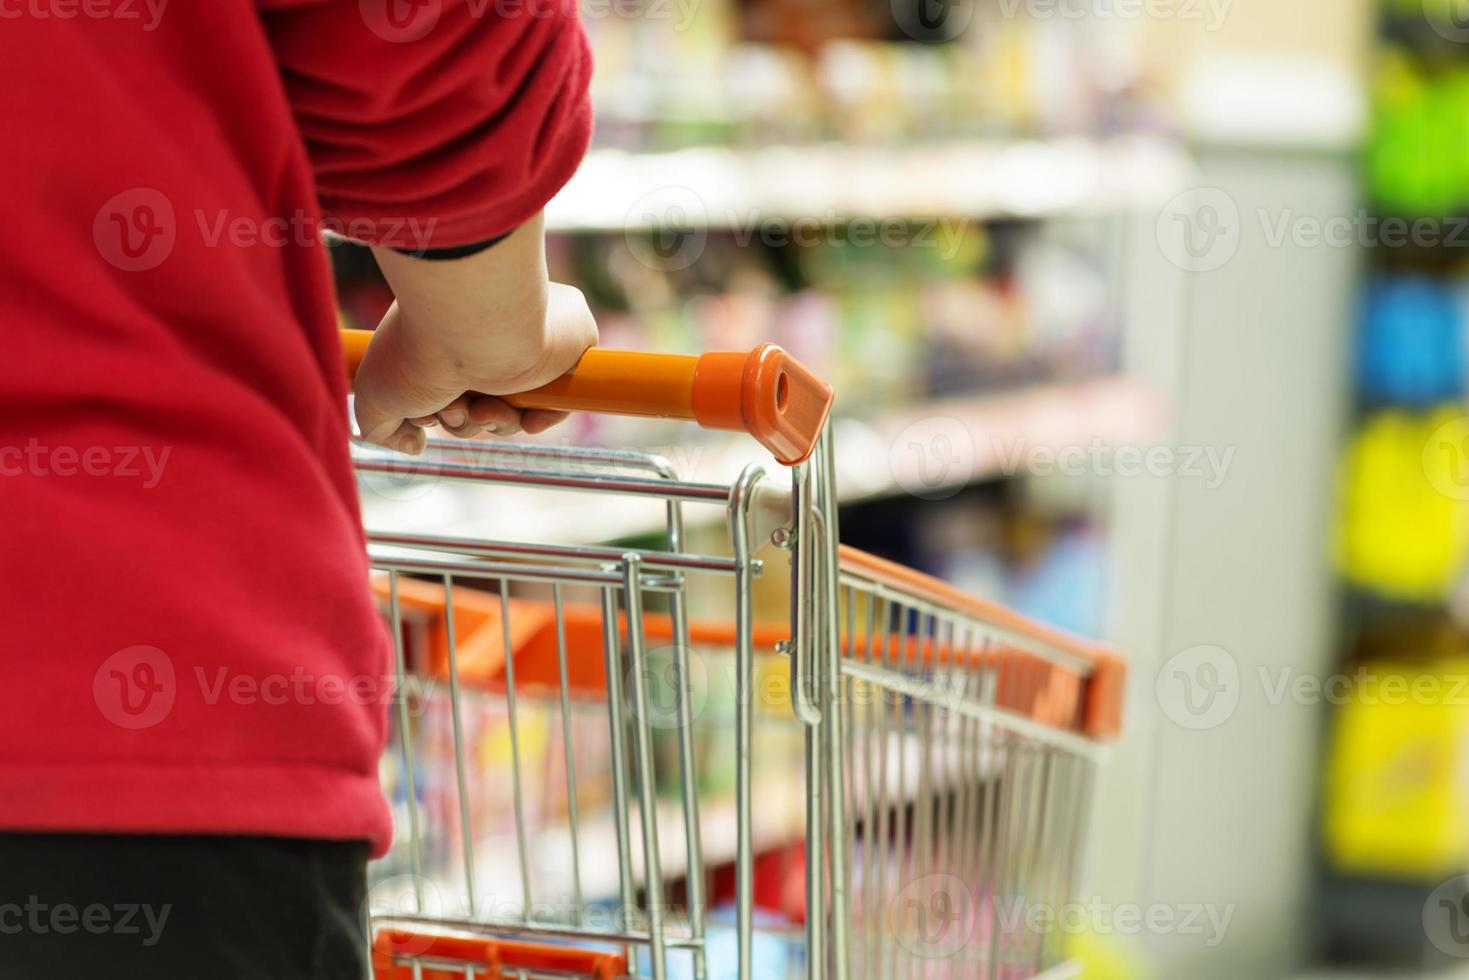 Lady pushing a shopping cart in the supermarket. photo